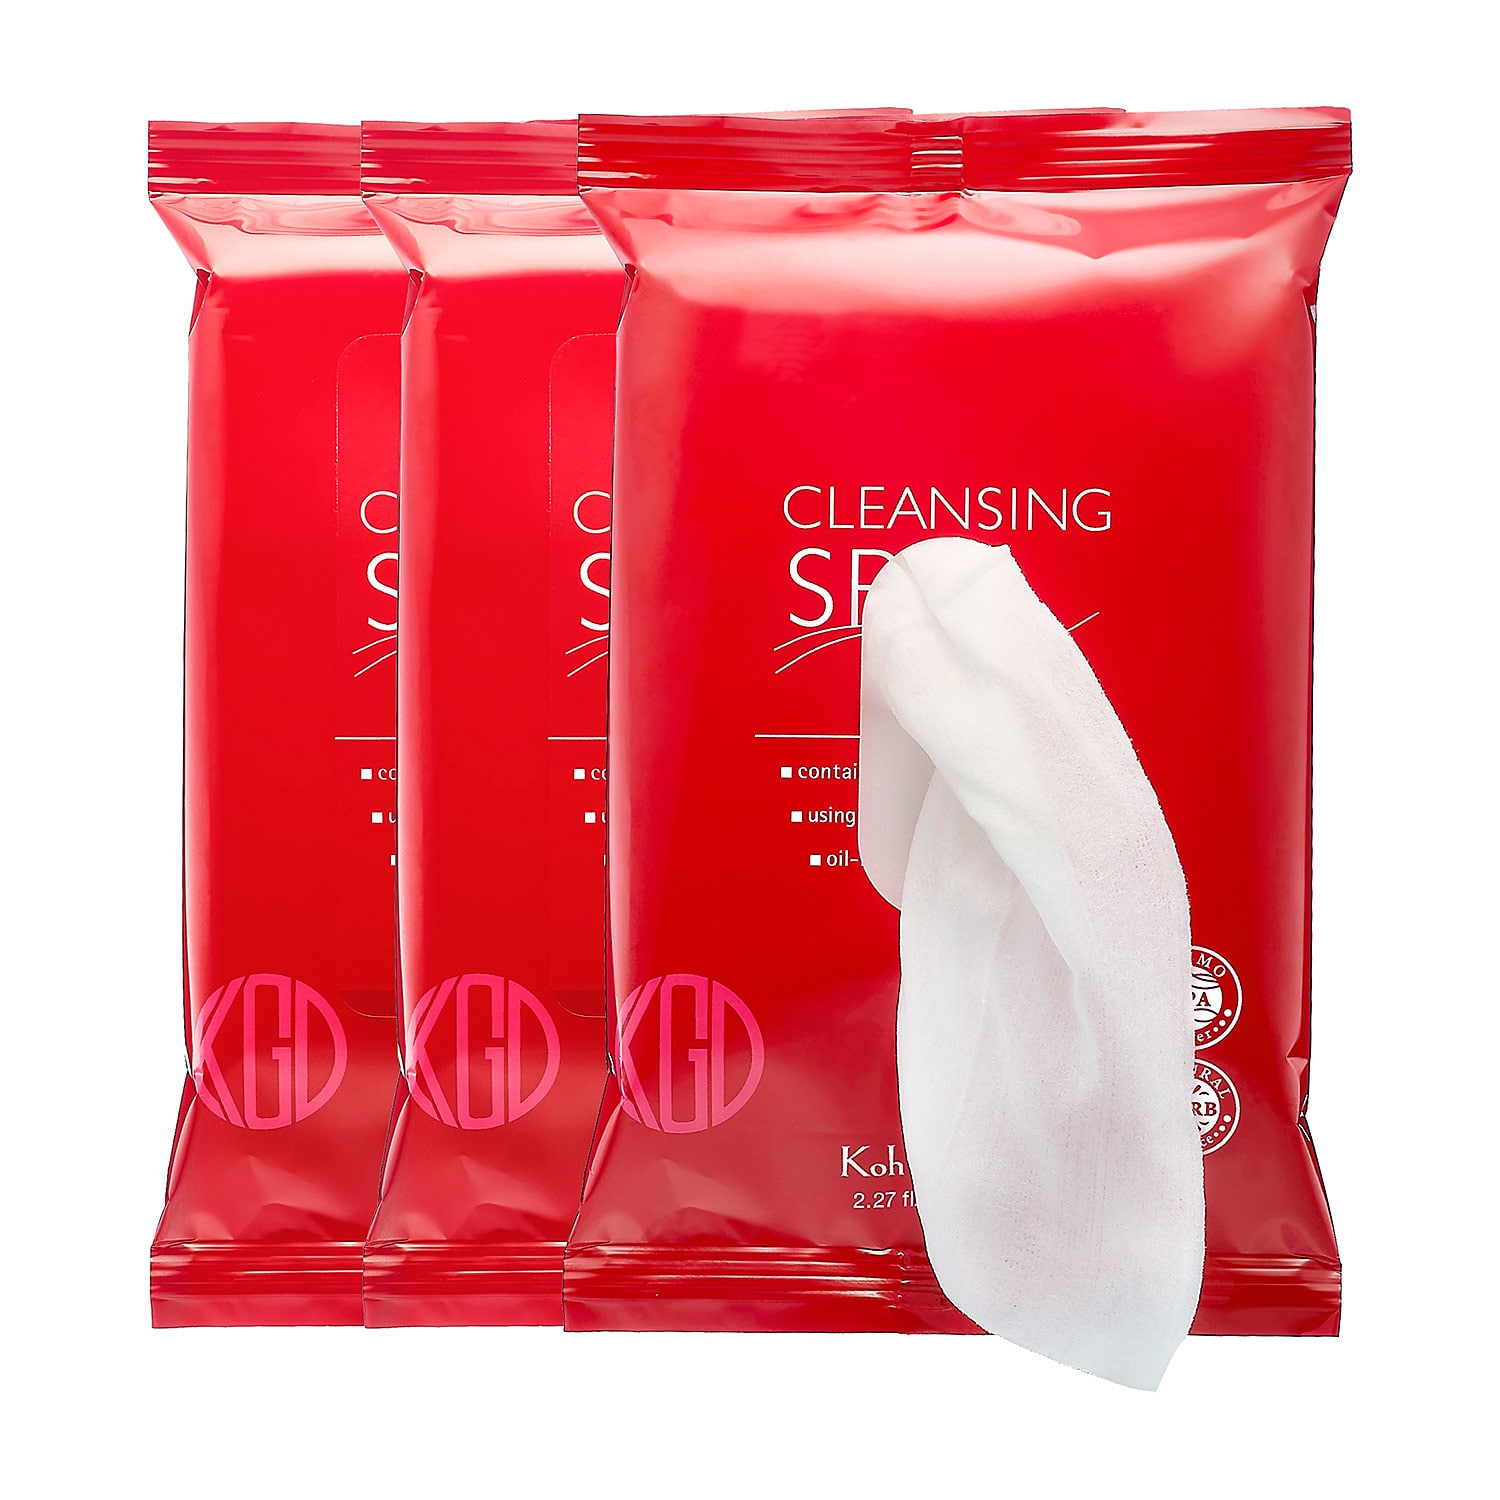 Cleansing Spa Water Cloths